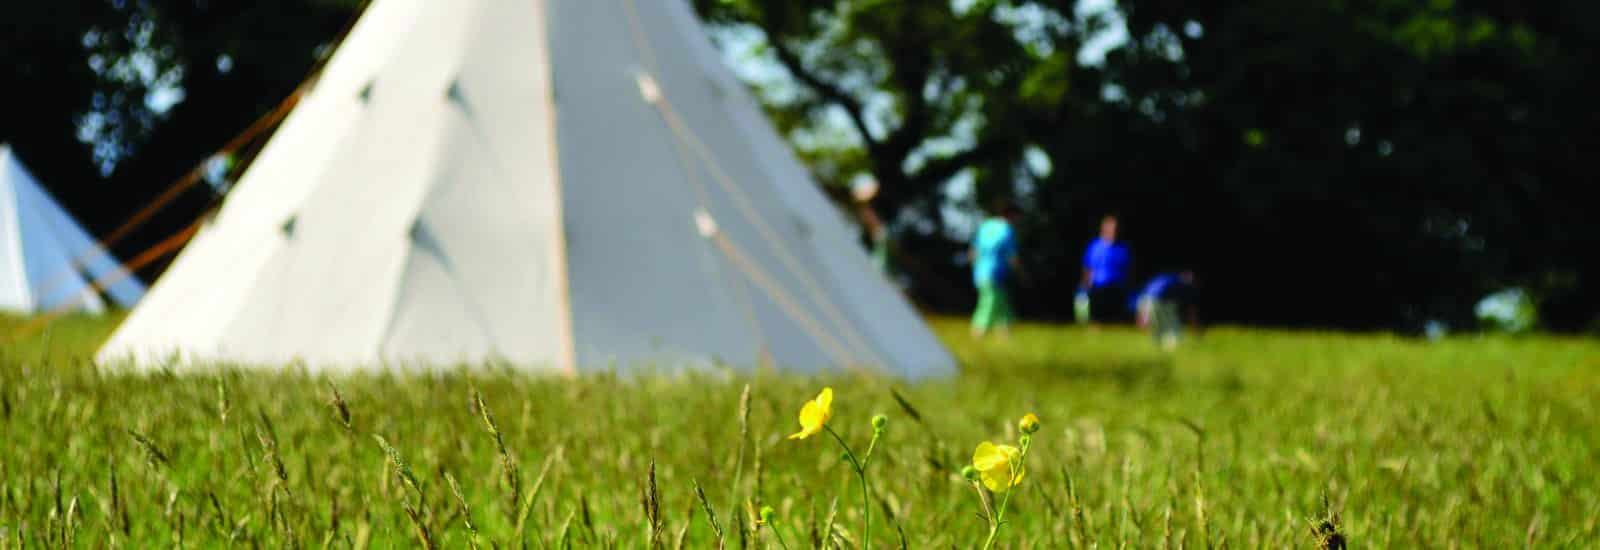 New for 2018 – Camp Cleavel Tipi Village